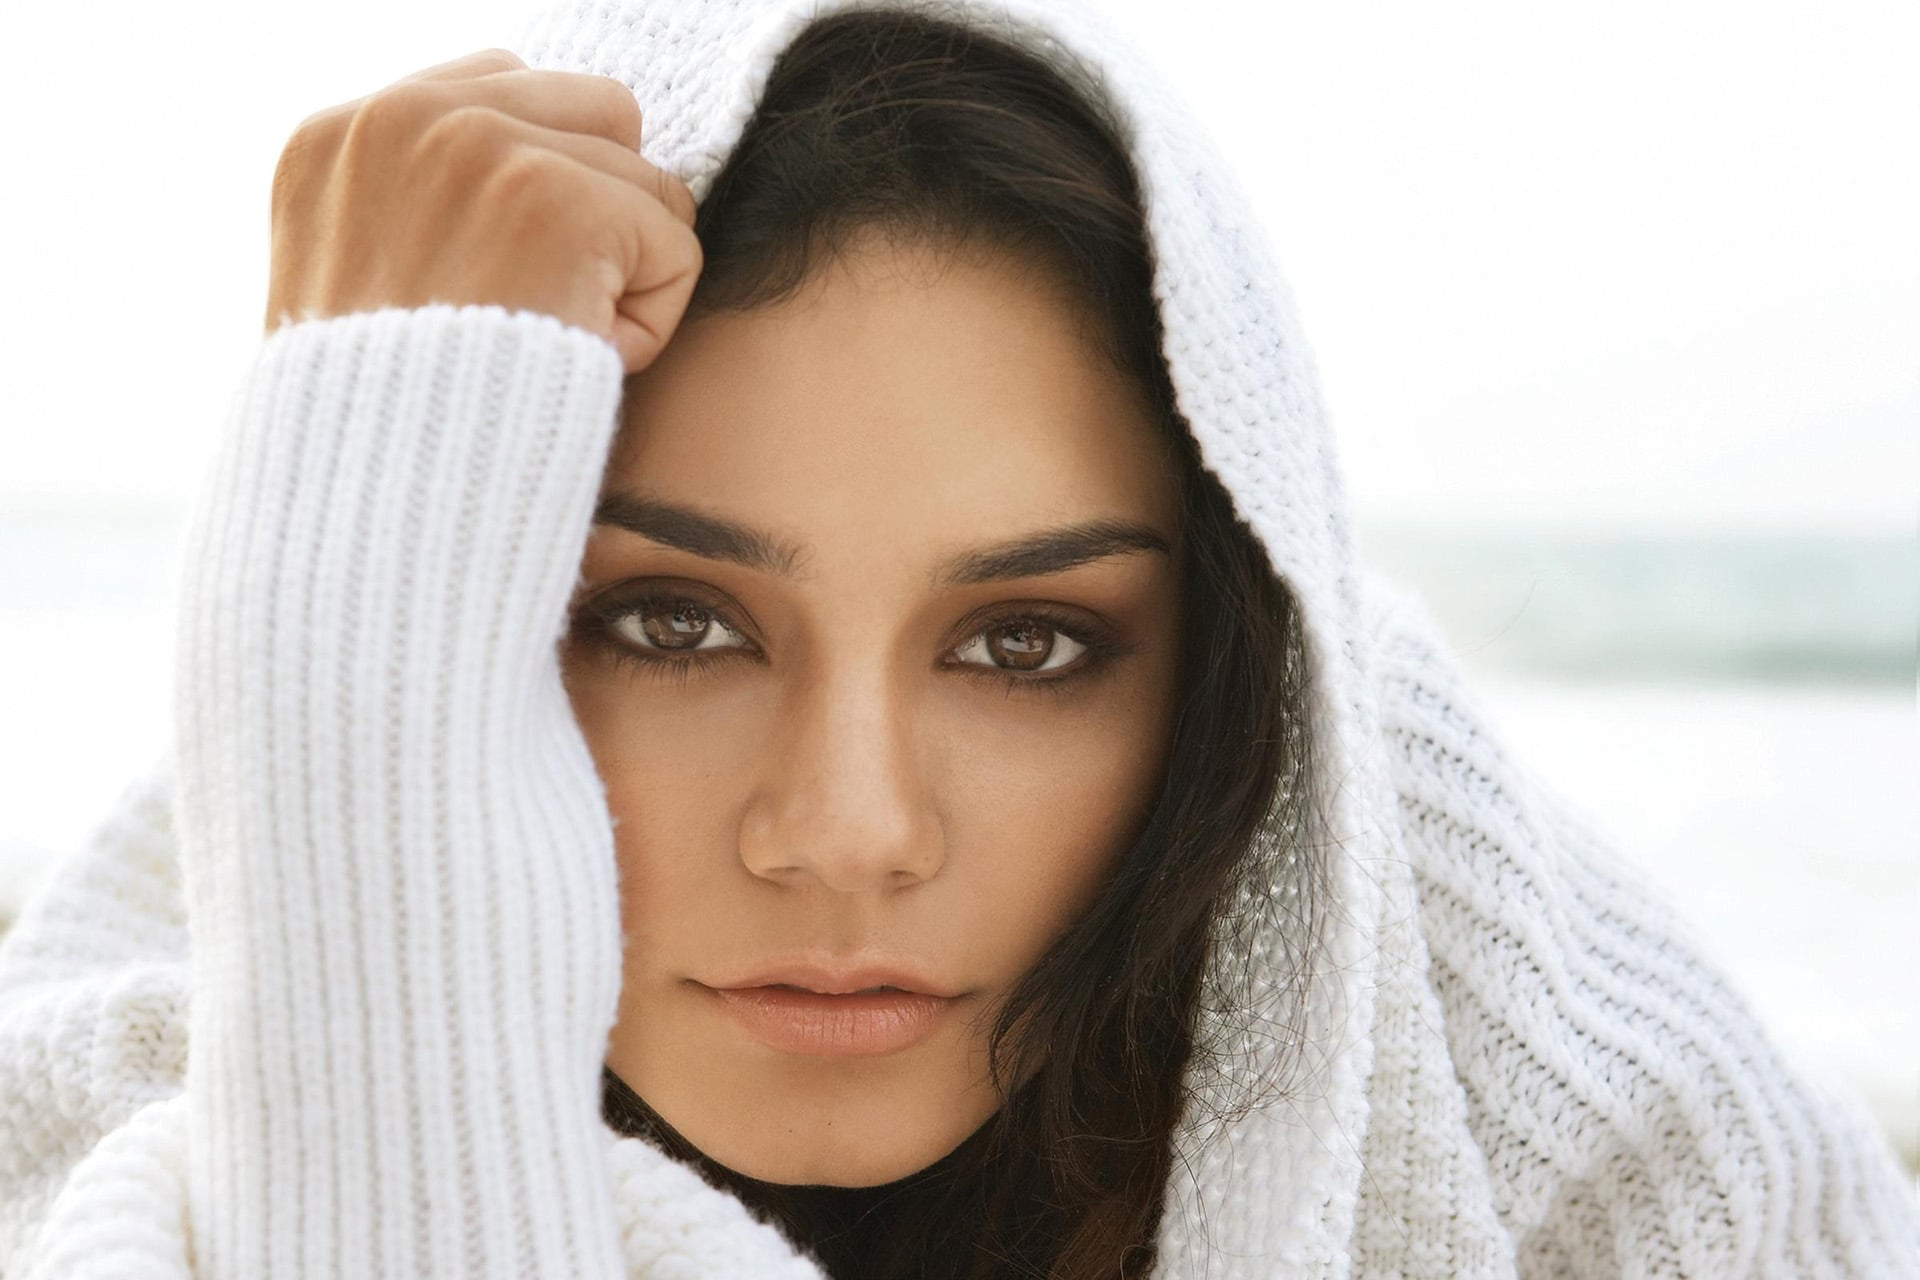 24 vanessa hudgens hd wallpapers free download